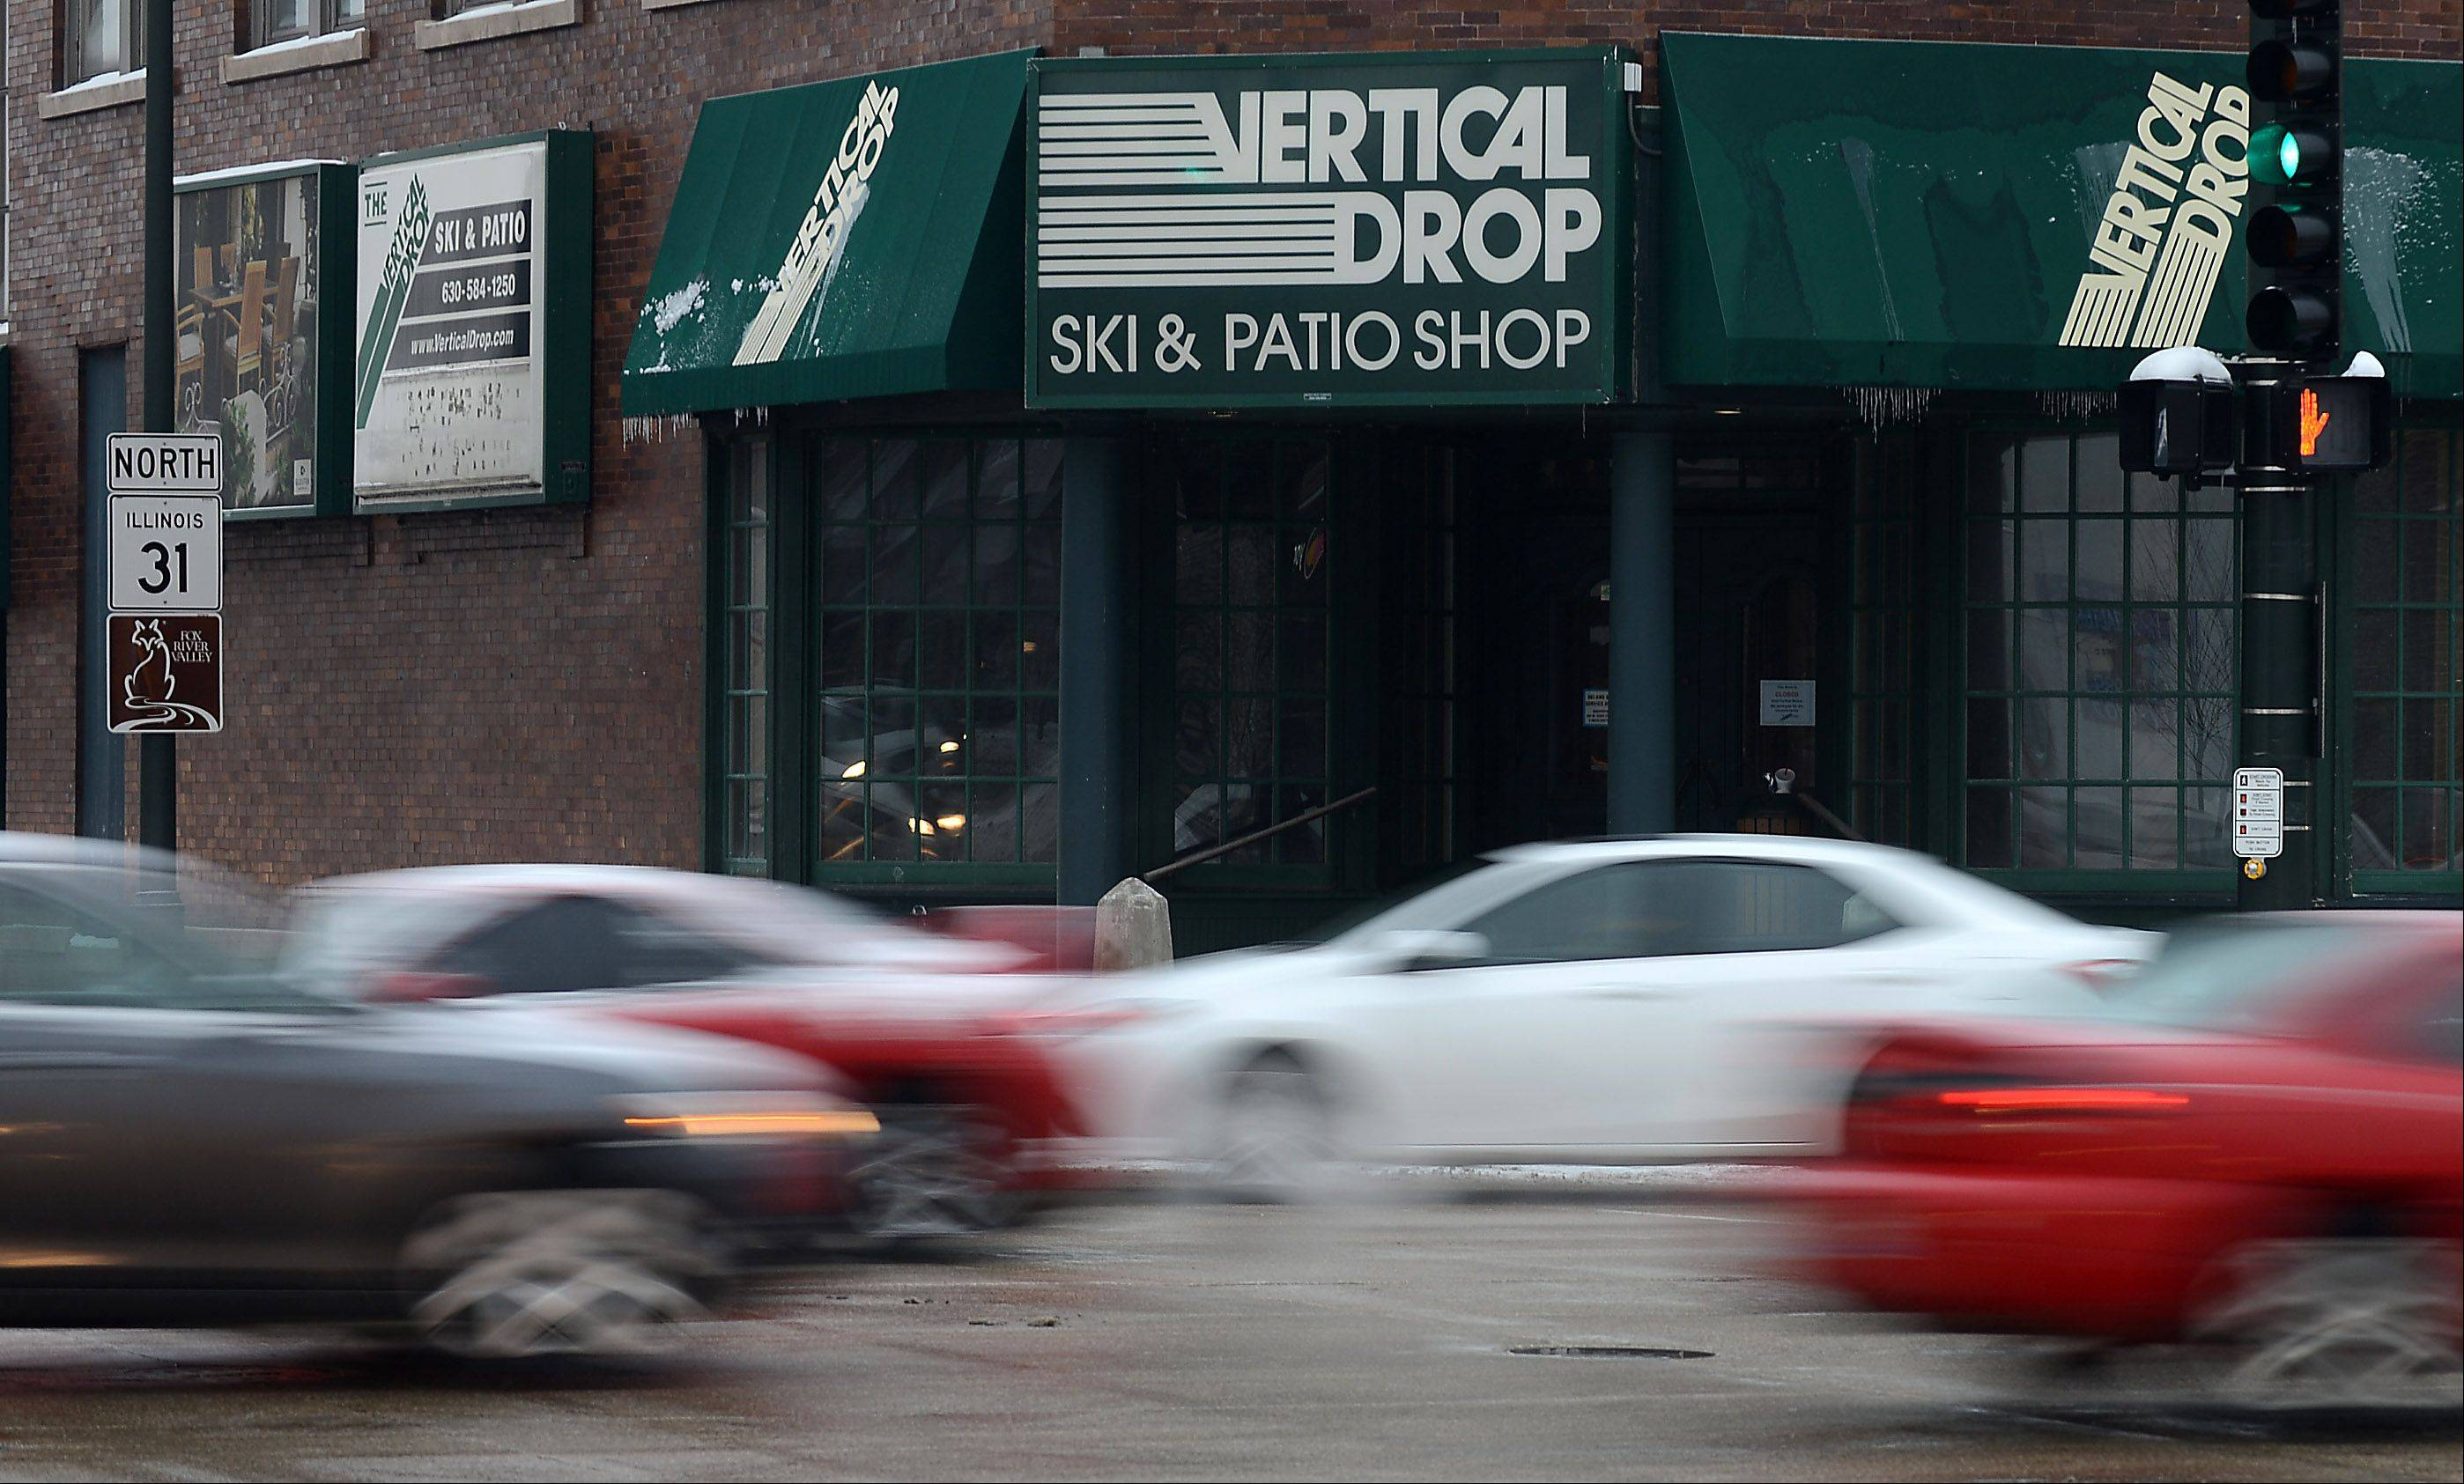 The Vertical Drop in downtown St. Charles sits empty after many years in business.